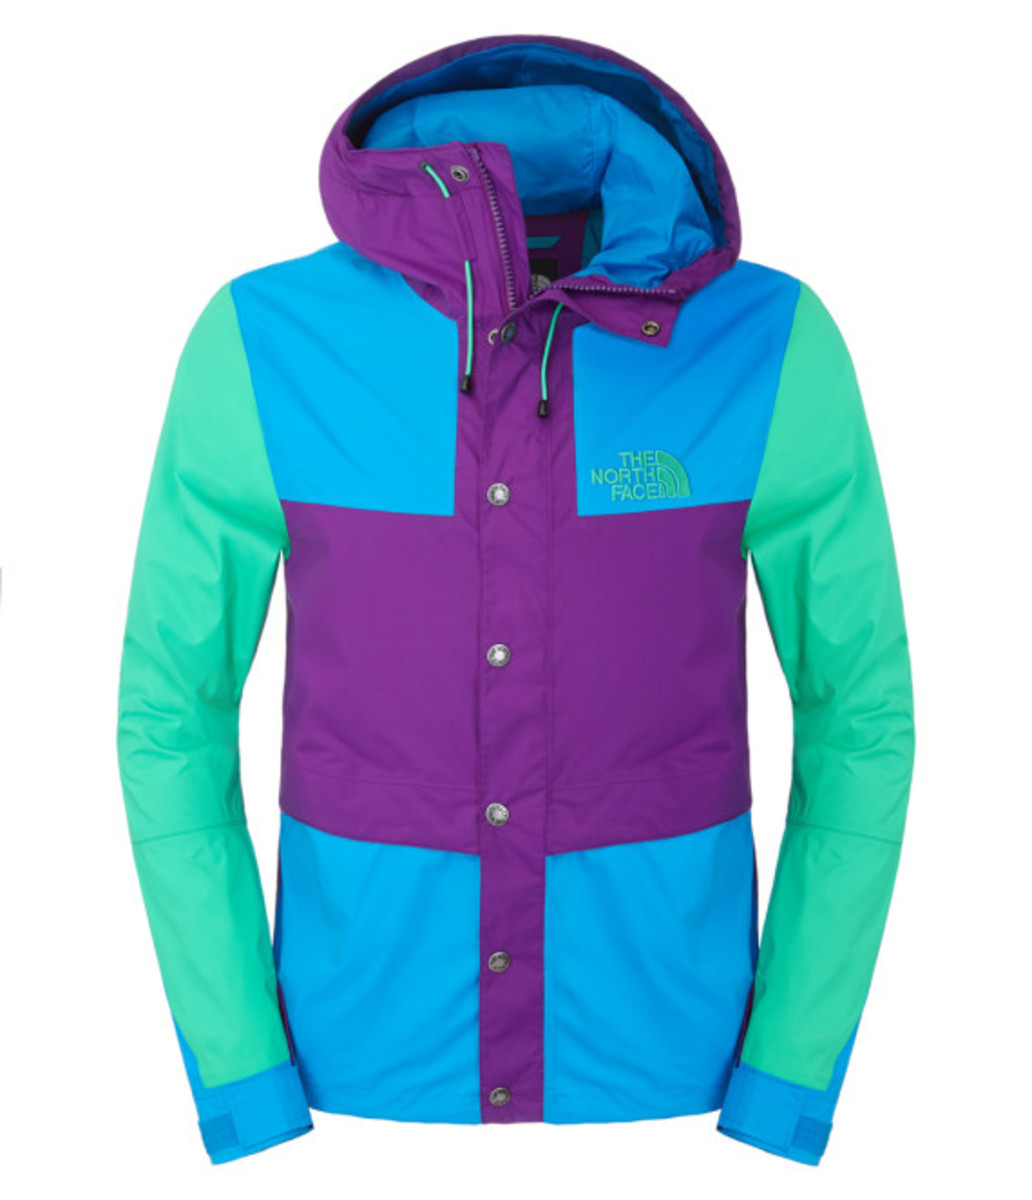 the-north-face-mountain-jacket-17